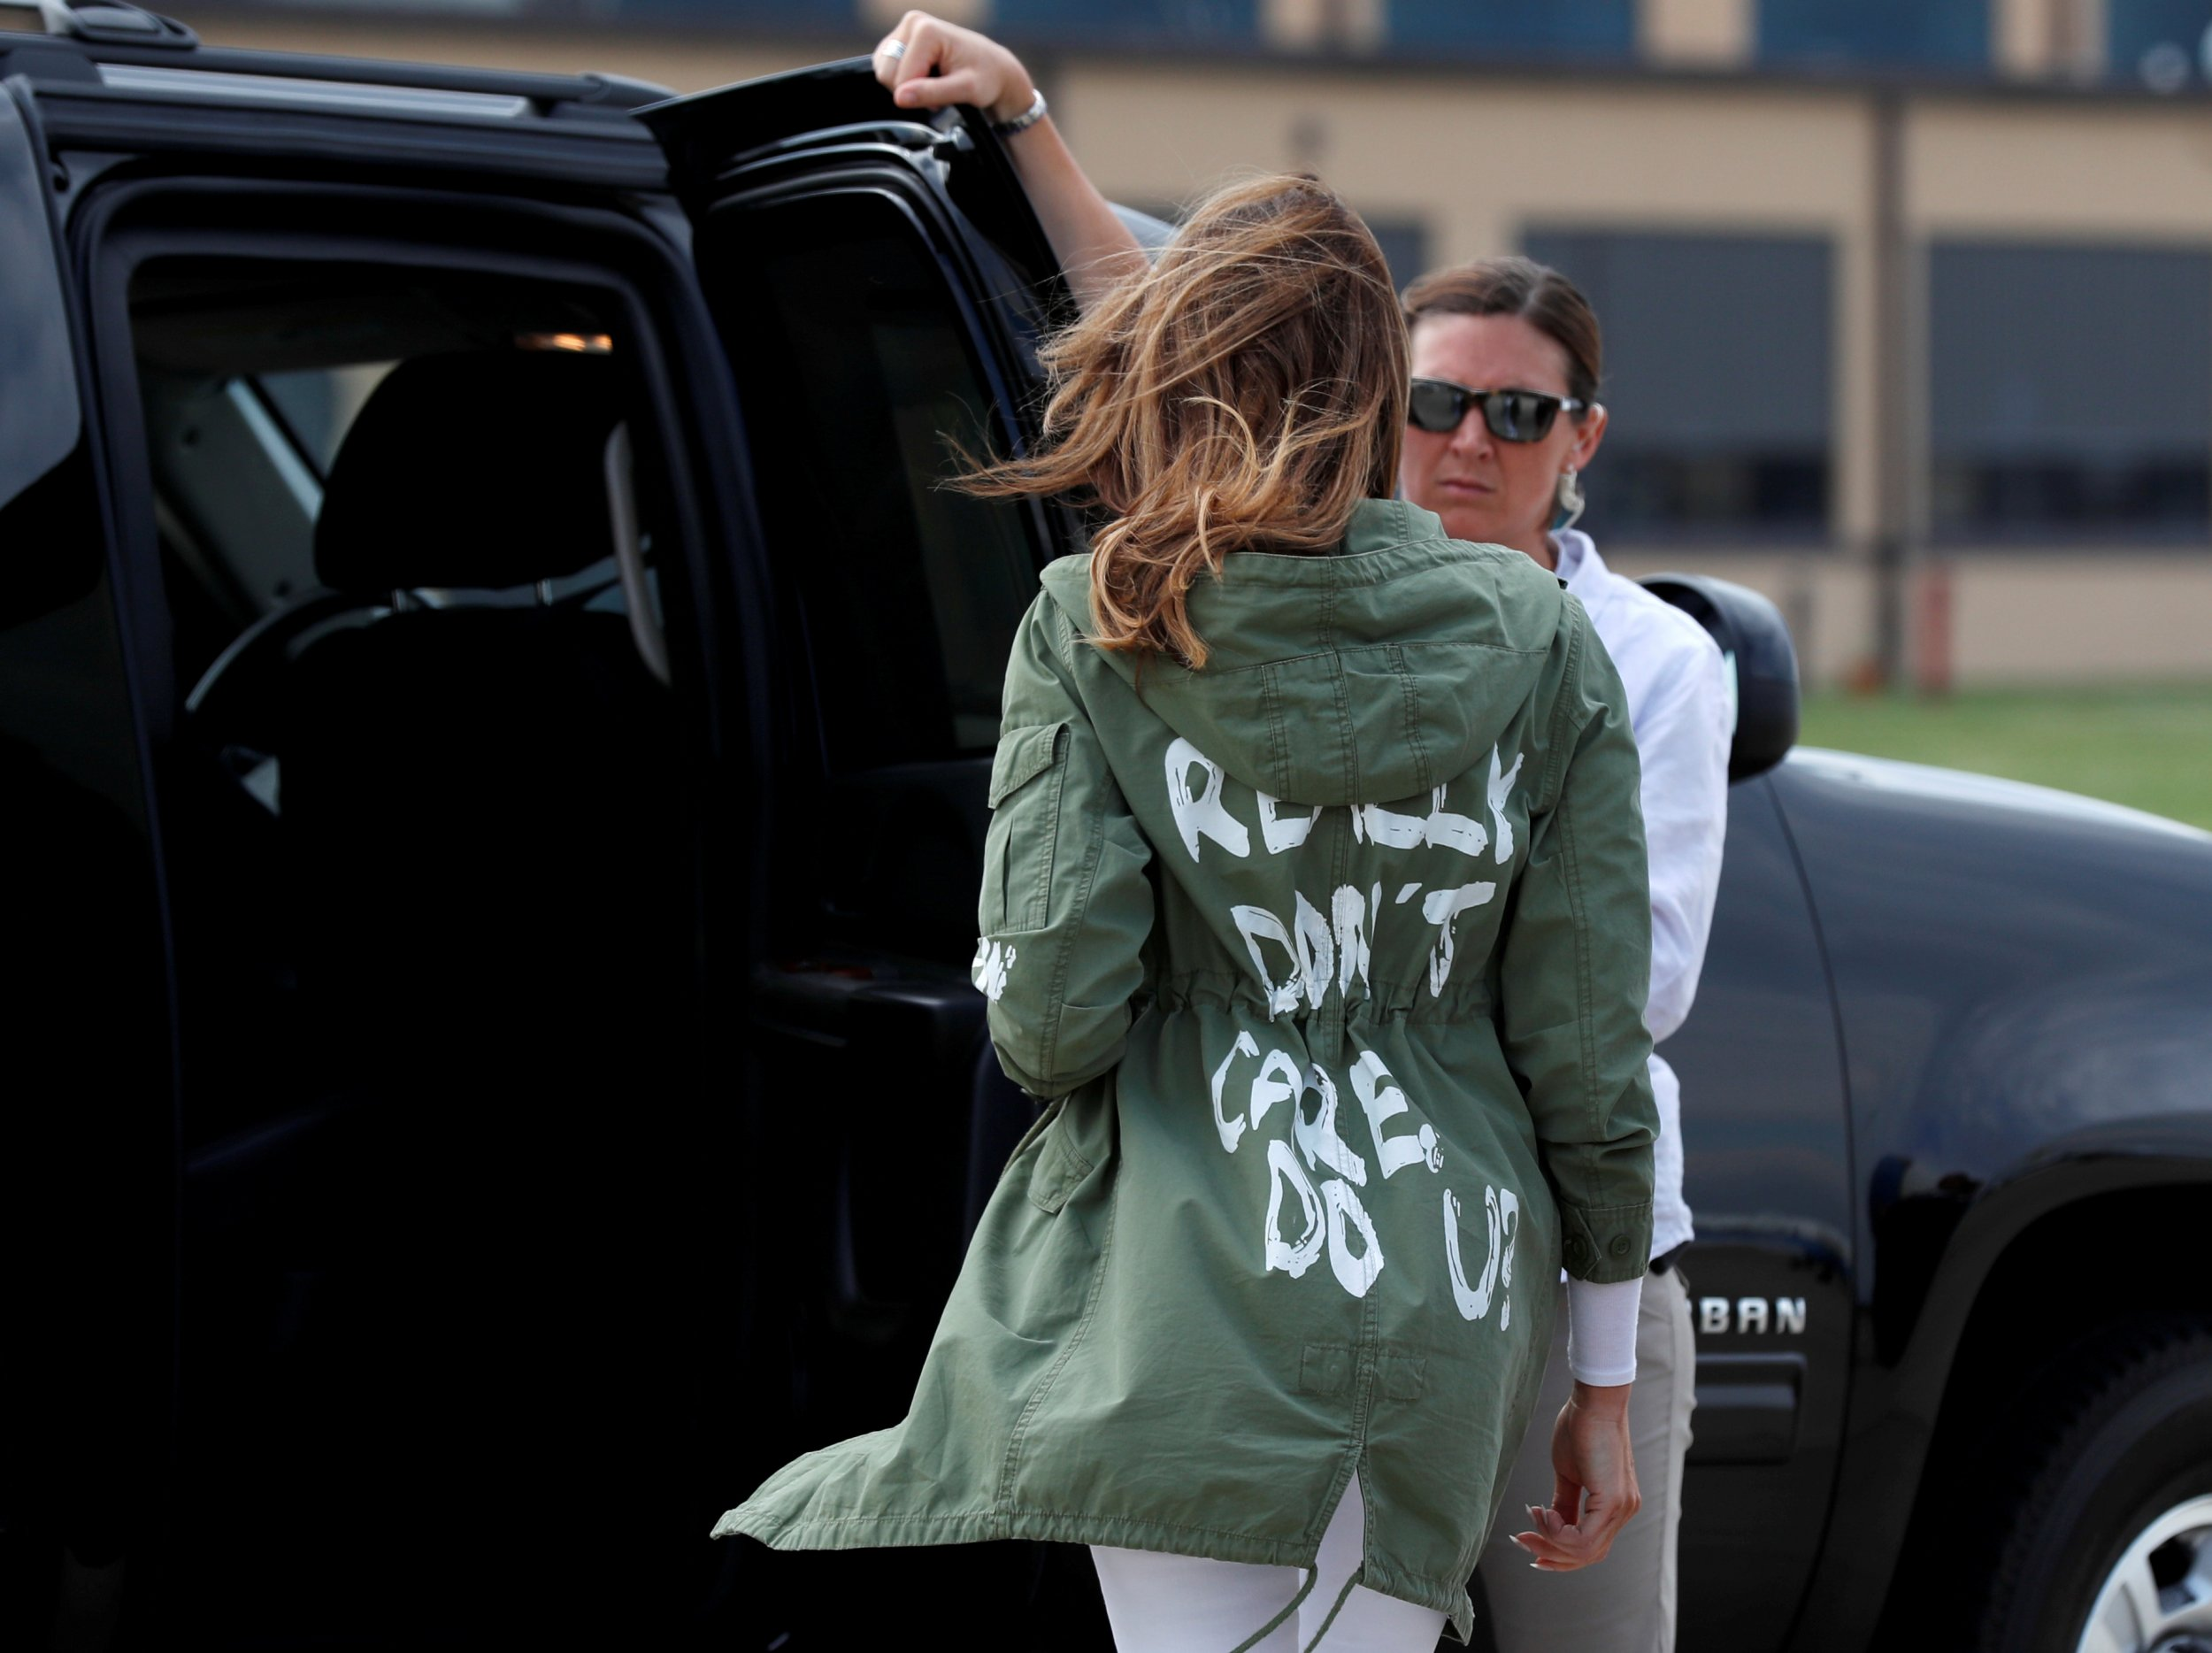 119ab82d5bc97 2018-06-22T055507Z 2069739076 RC135B0D73C0 RTRMADP 3 USA-IMMIGRATION- MELANIATRUMP-JACKET